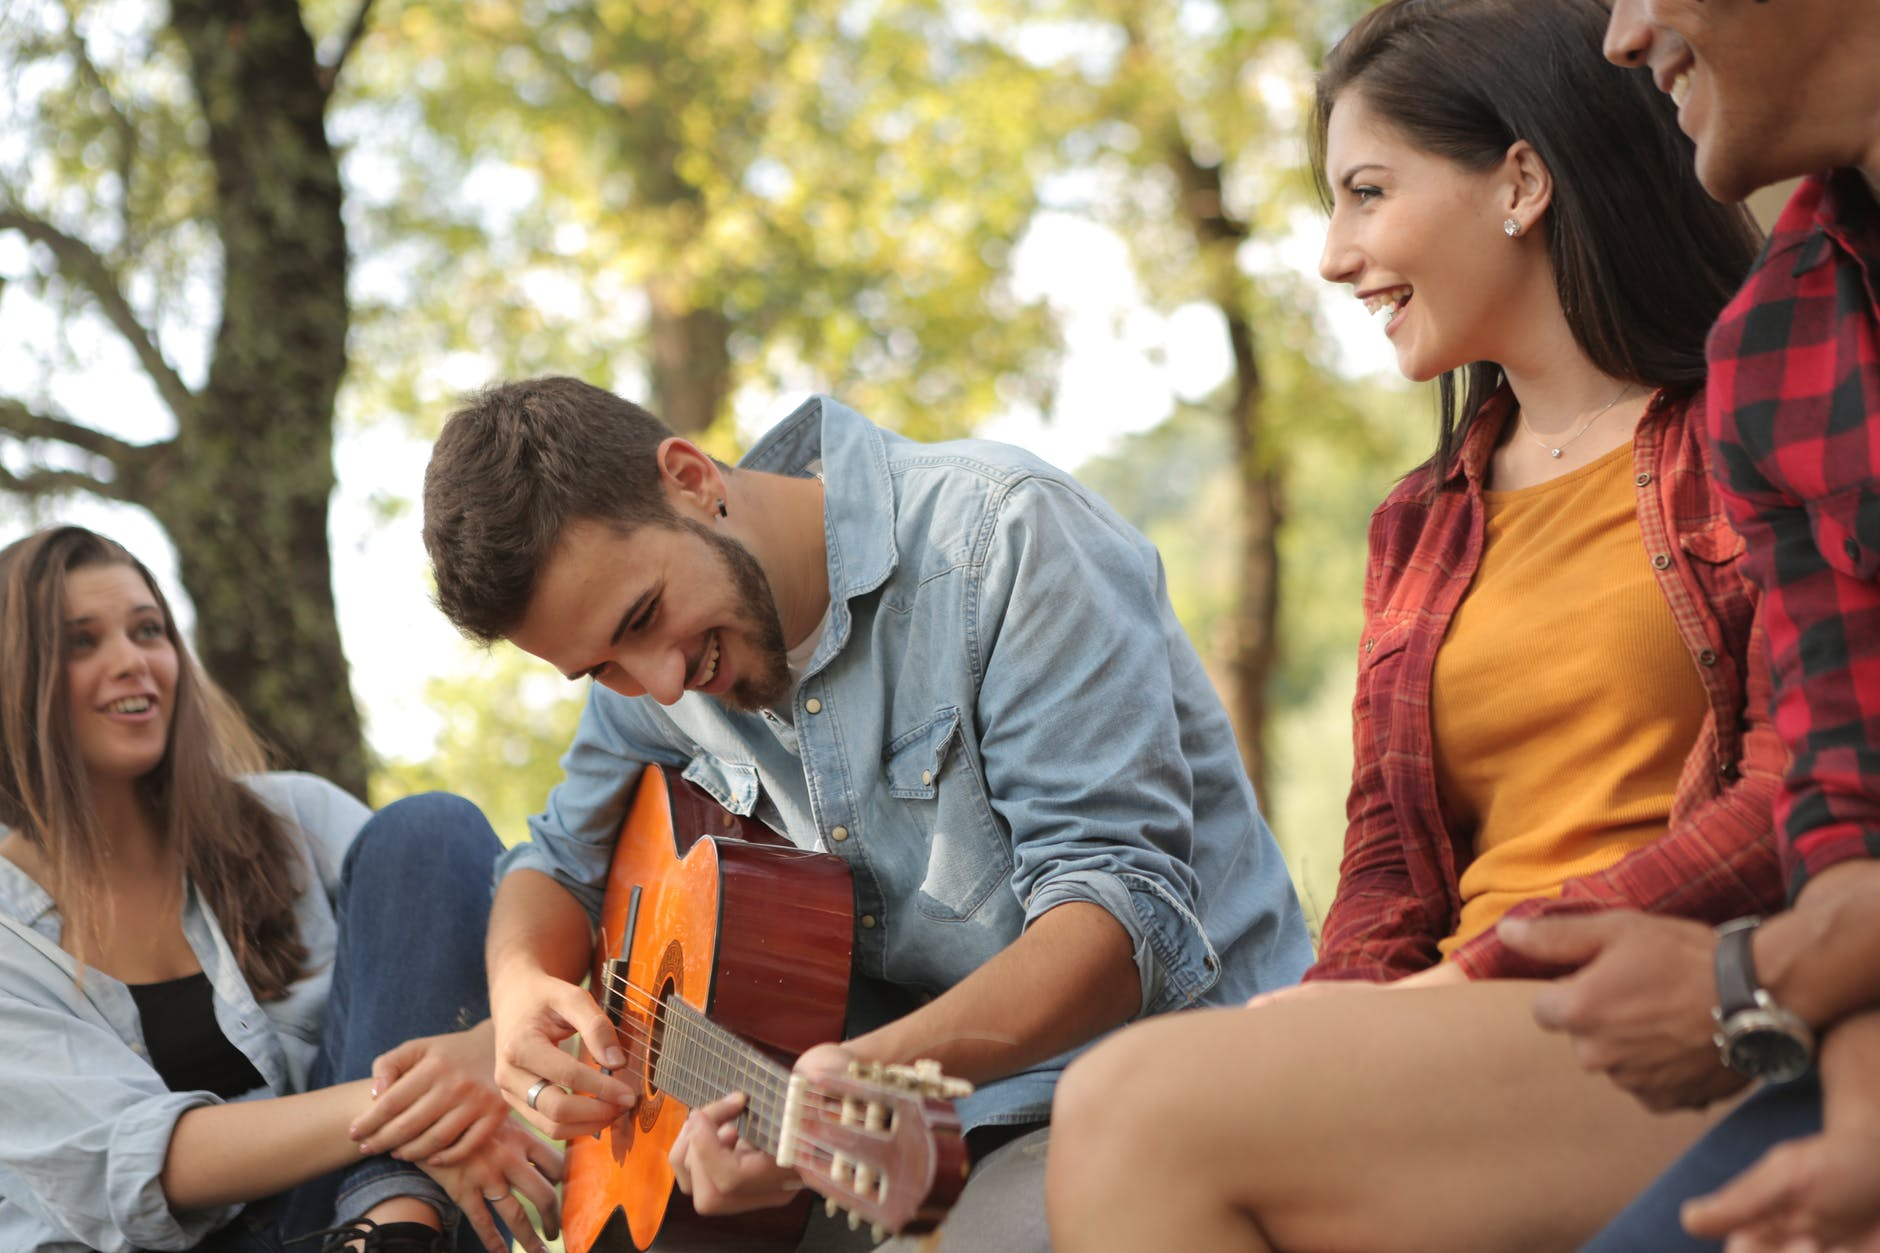 friends spending time together with guitar